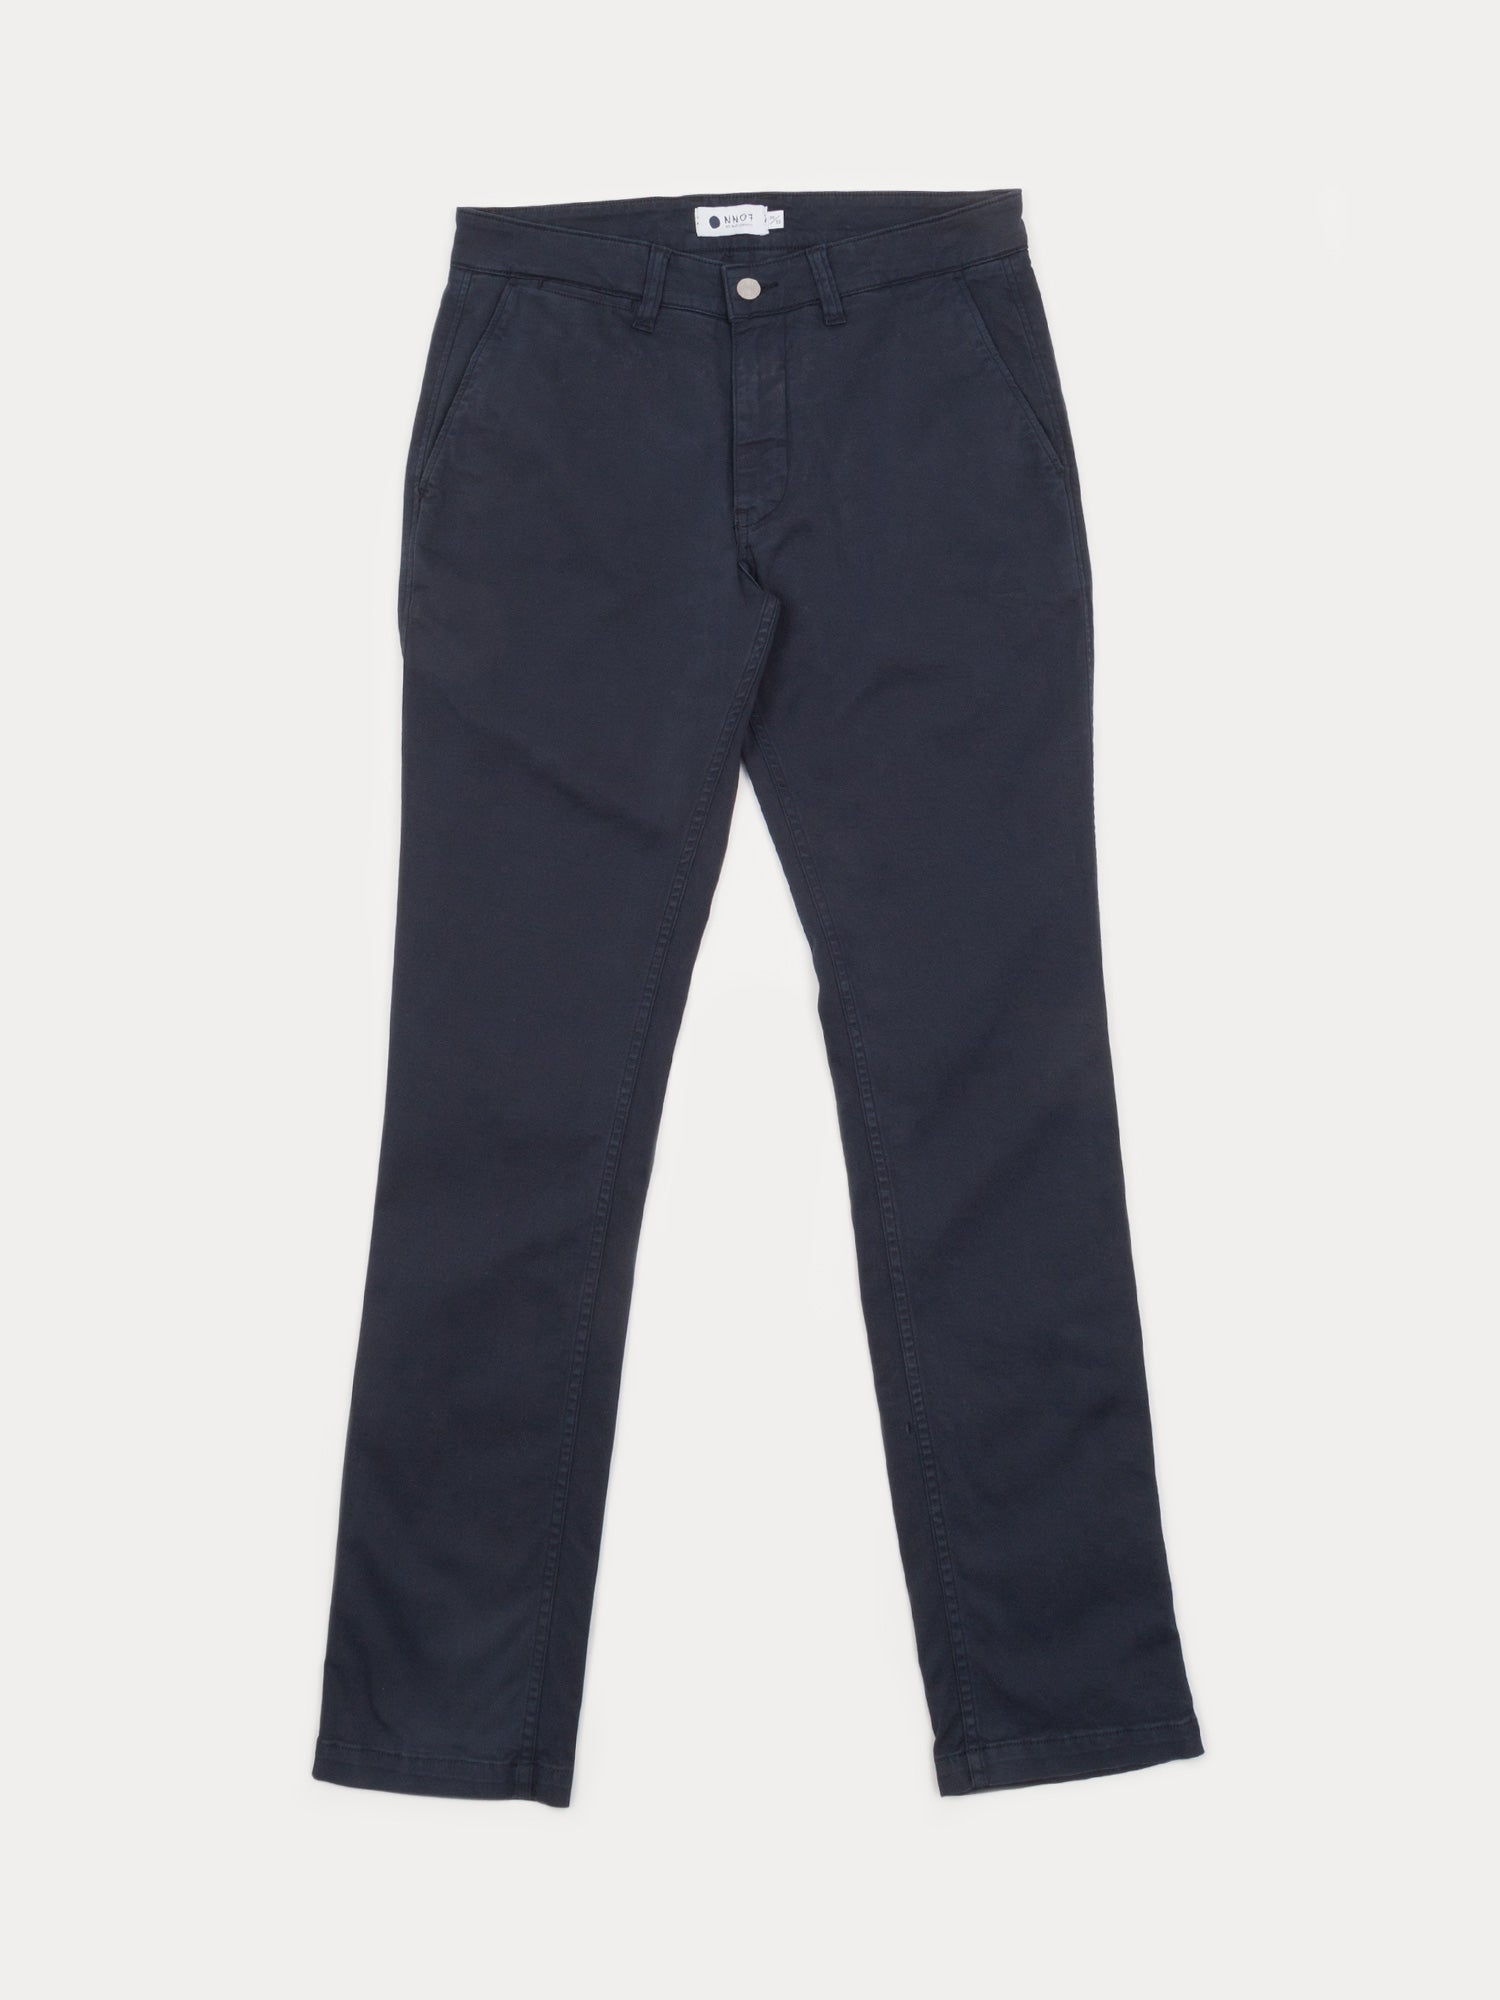 NN07 Marco Trousers (Navy Blue)